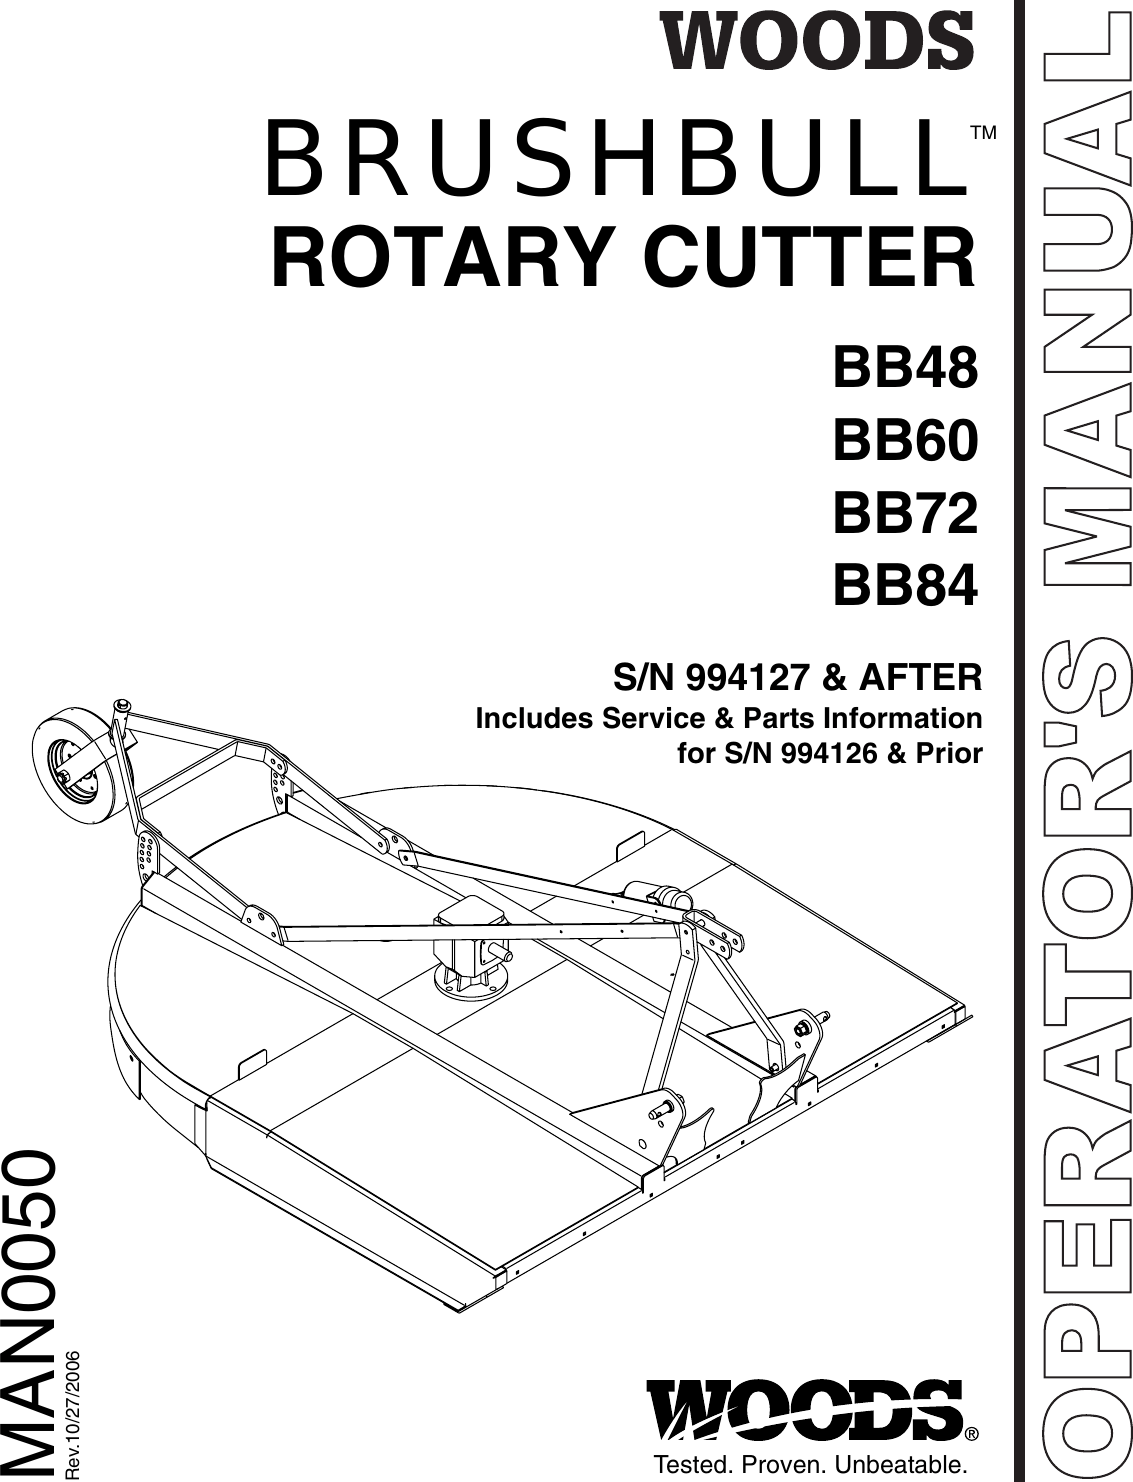 Brushbull Rotary Cutter BB48, BB60, BB72, And BB84